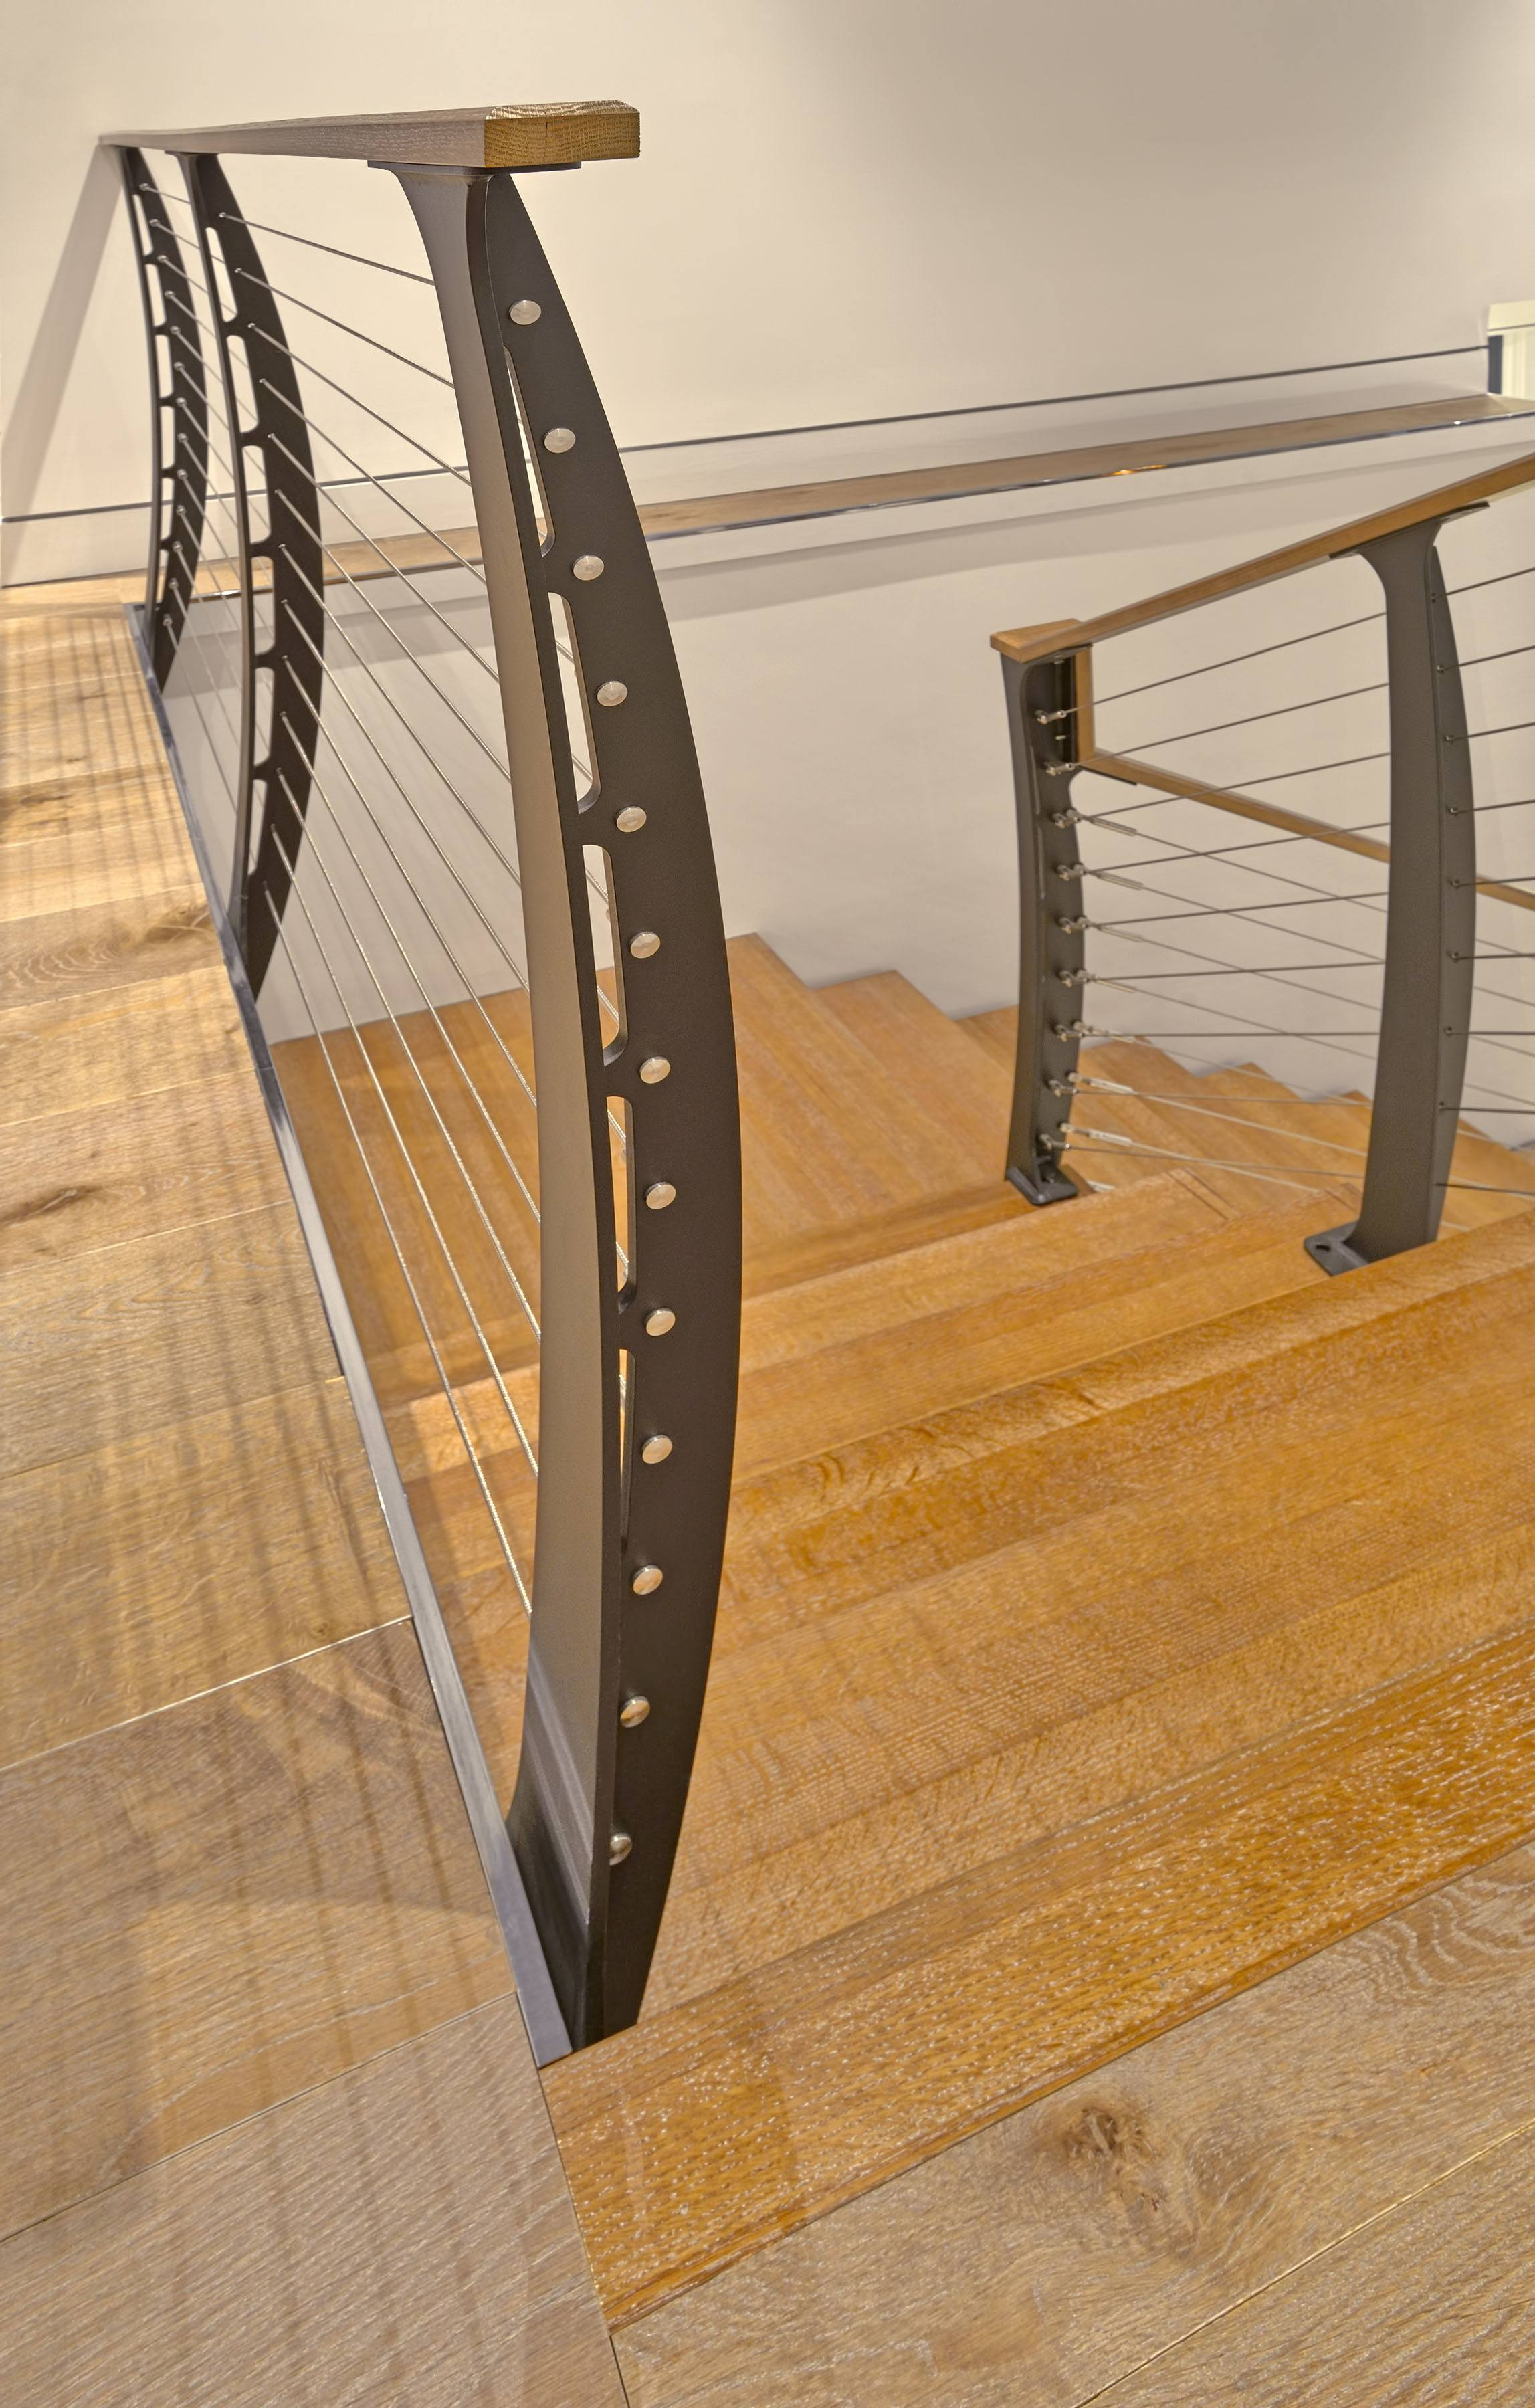 Reclaimed oak stairs with steel railing system